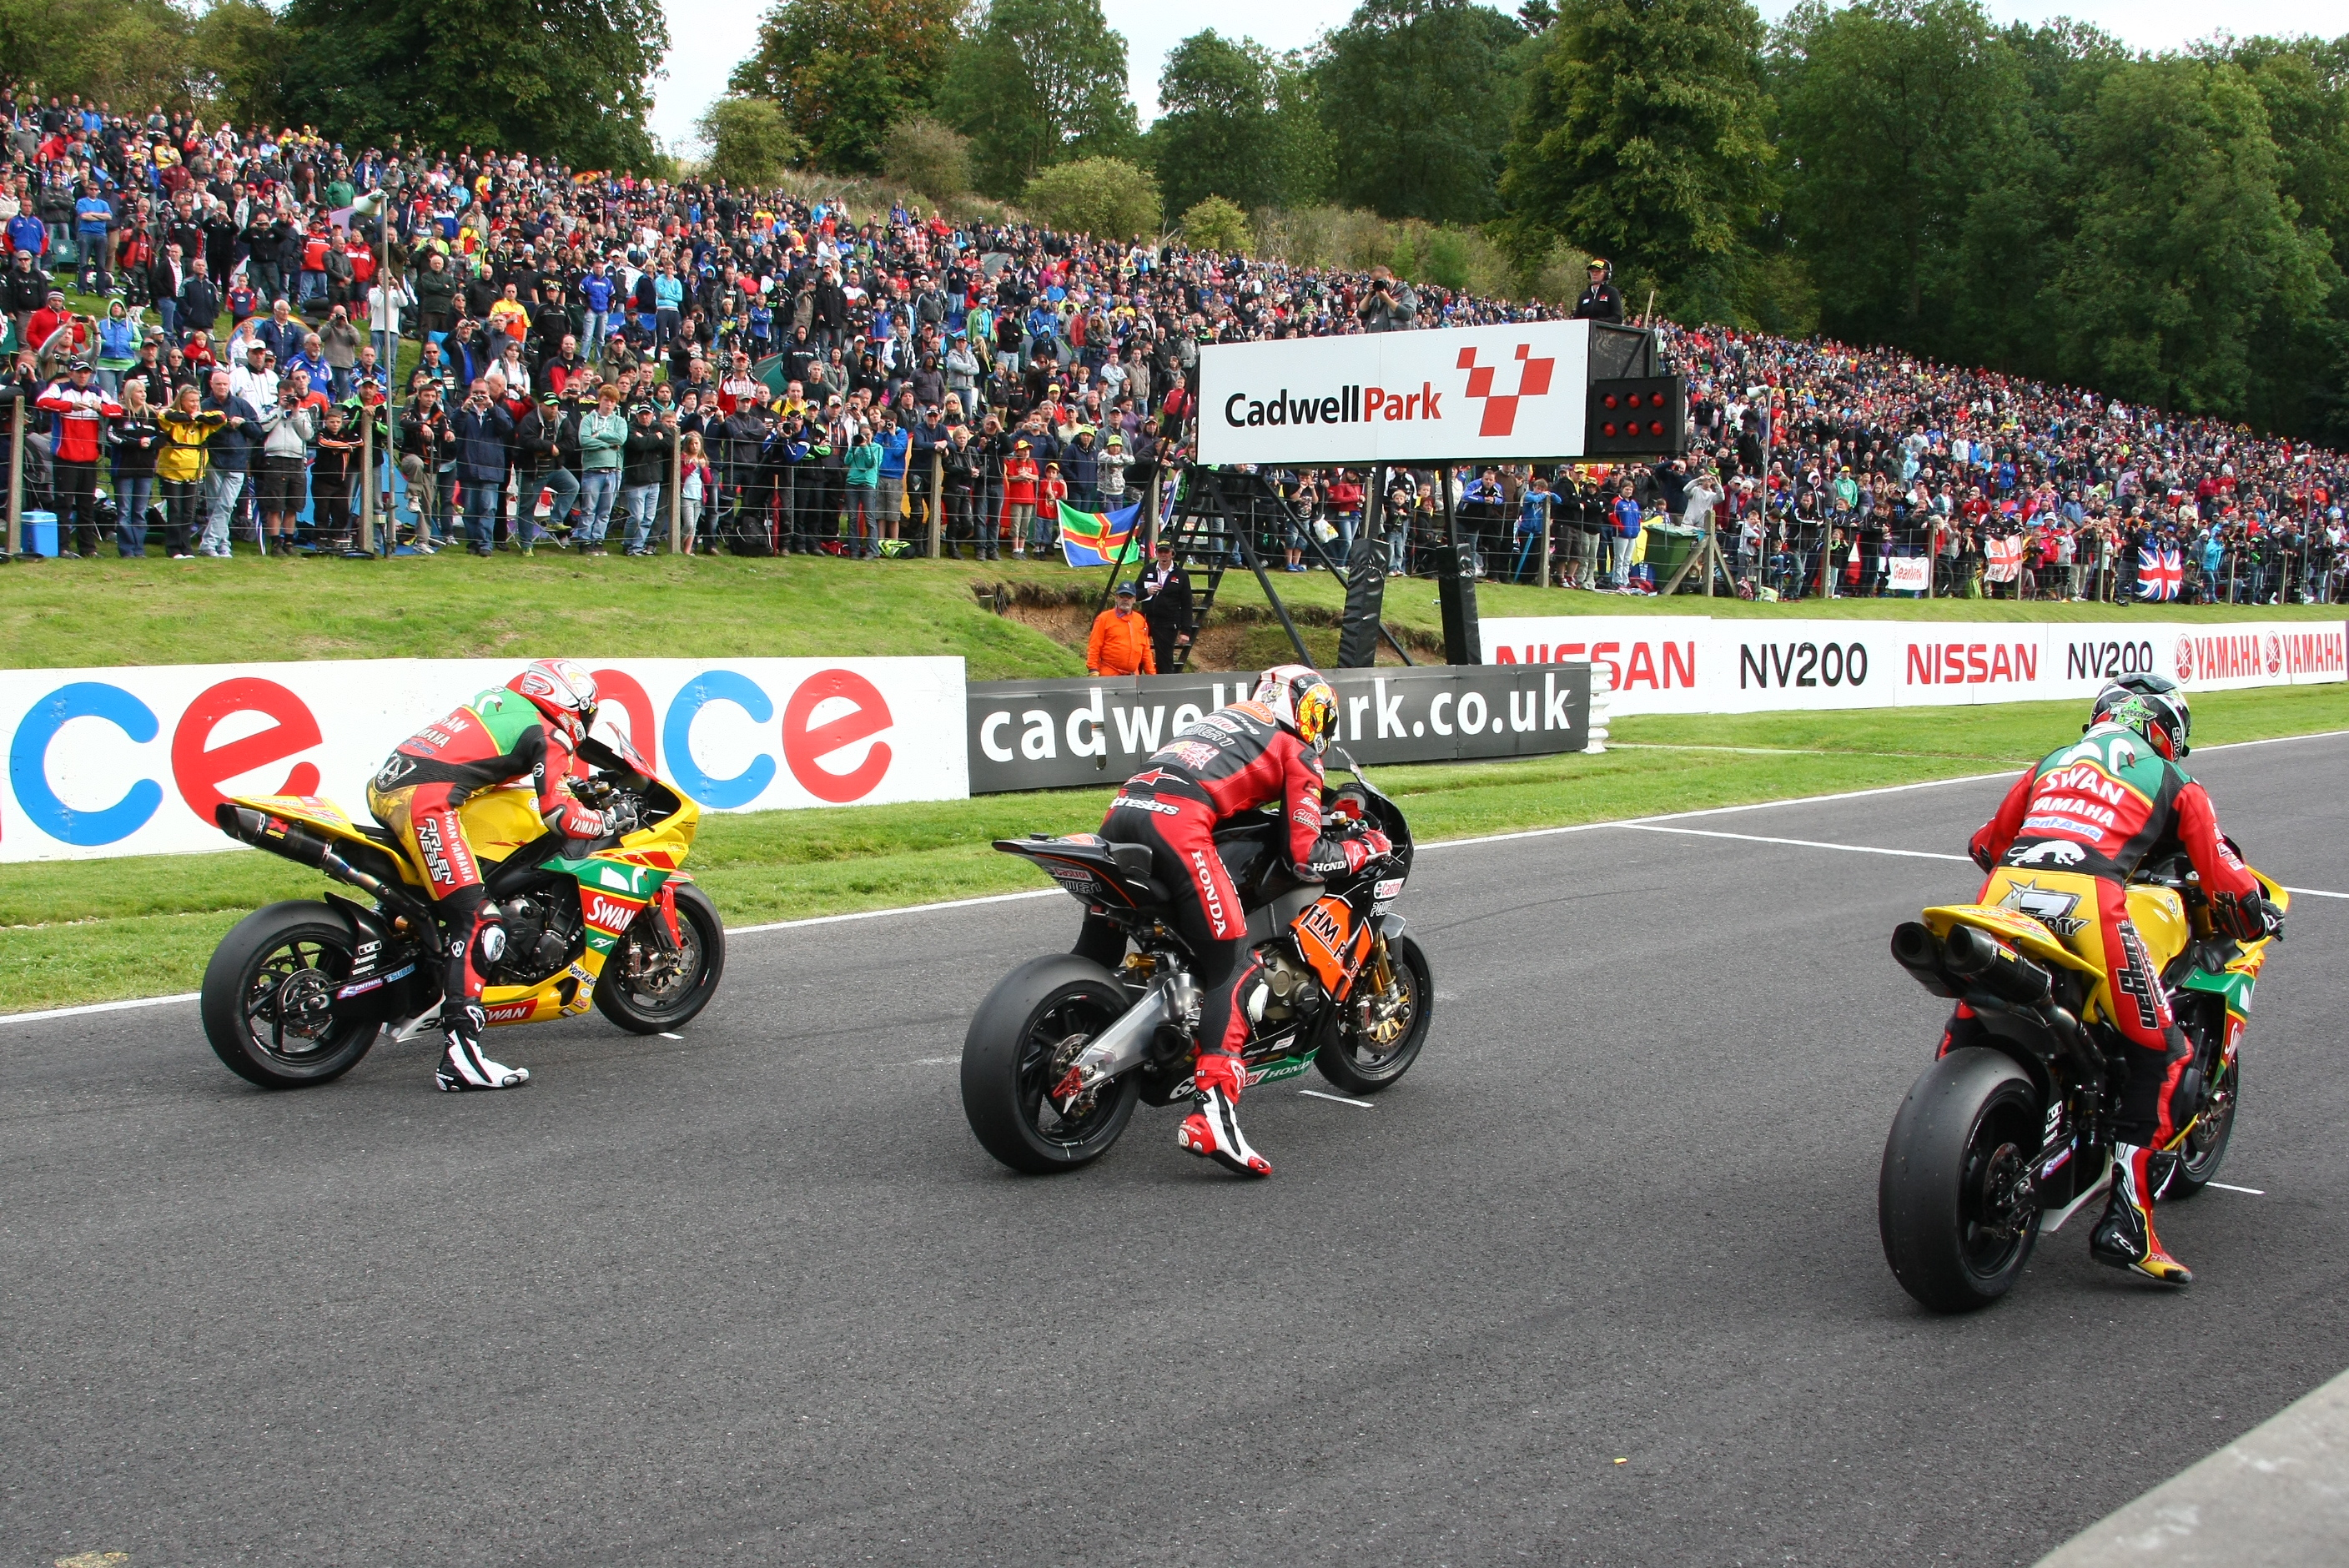 MSVR News - Control fuel order forms for BSB classes now available